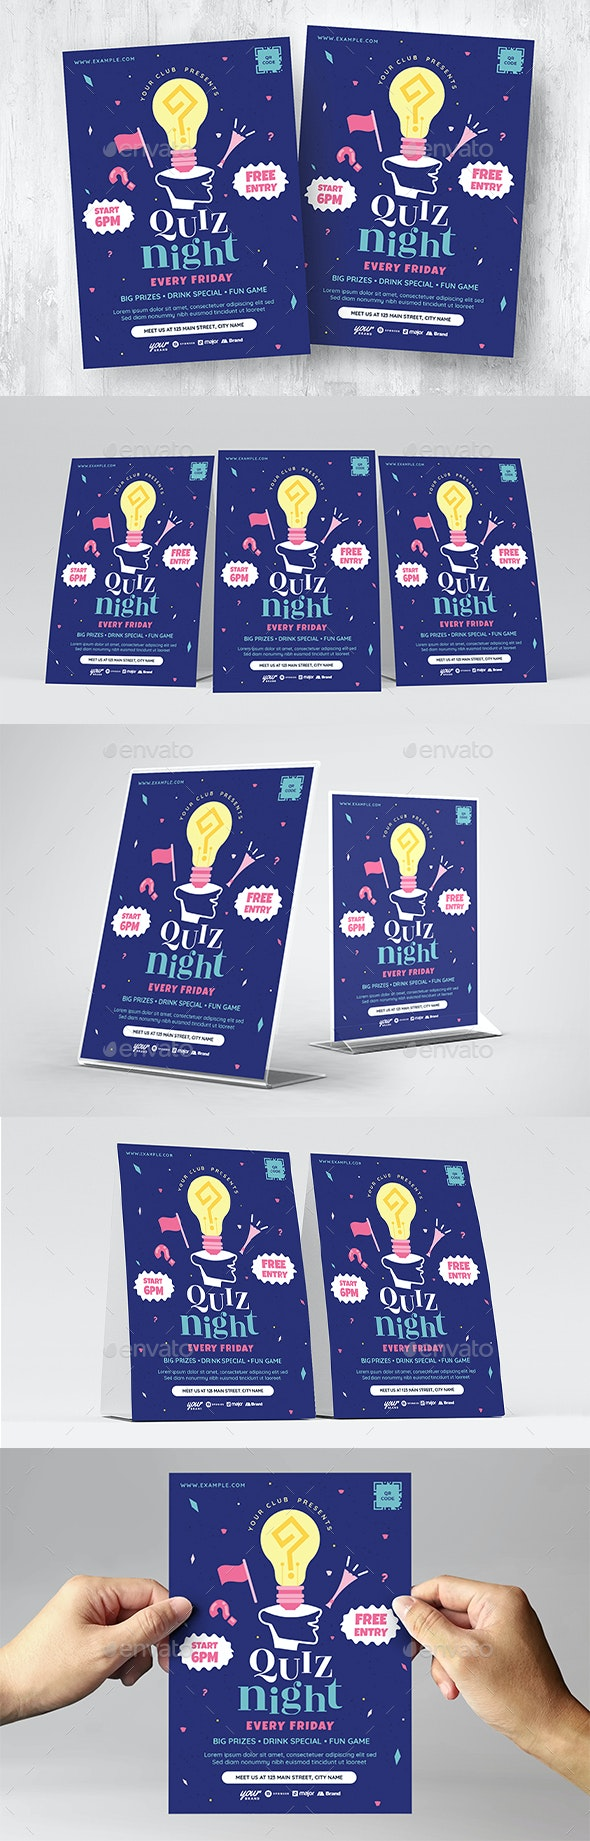 Quiz Night Flyer Template - Miscellaneous Events